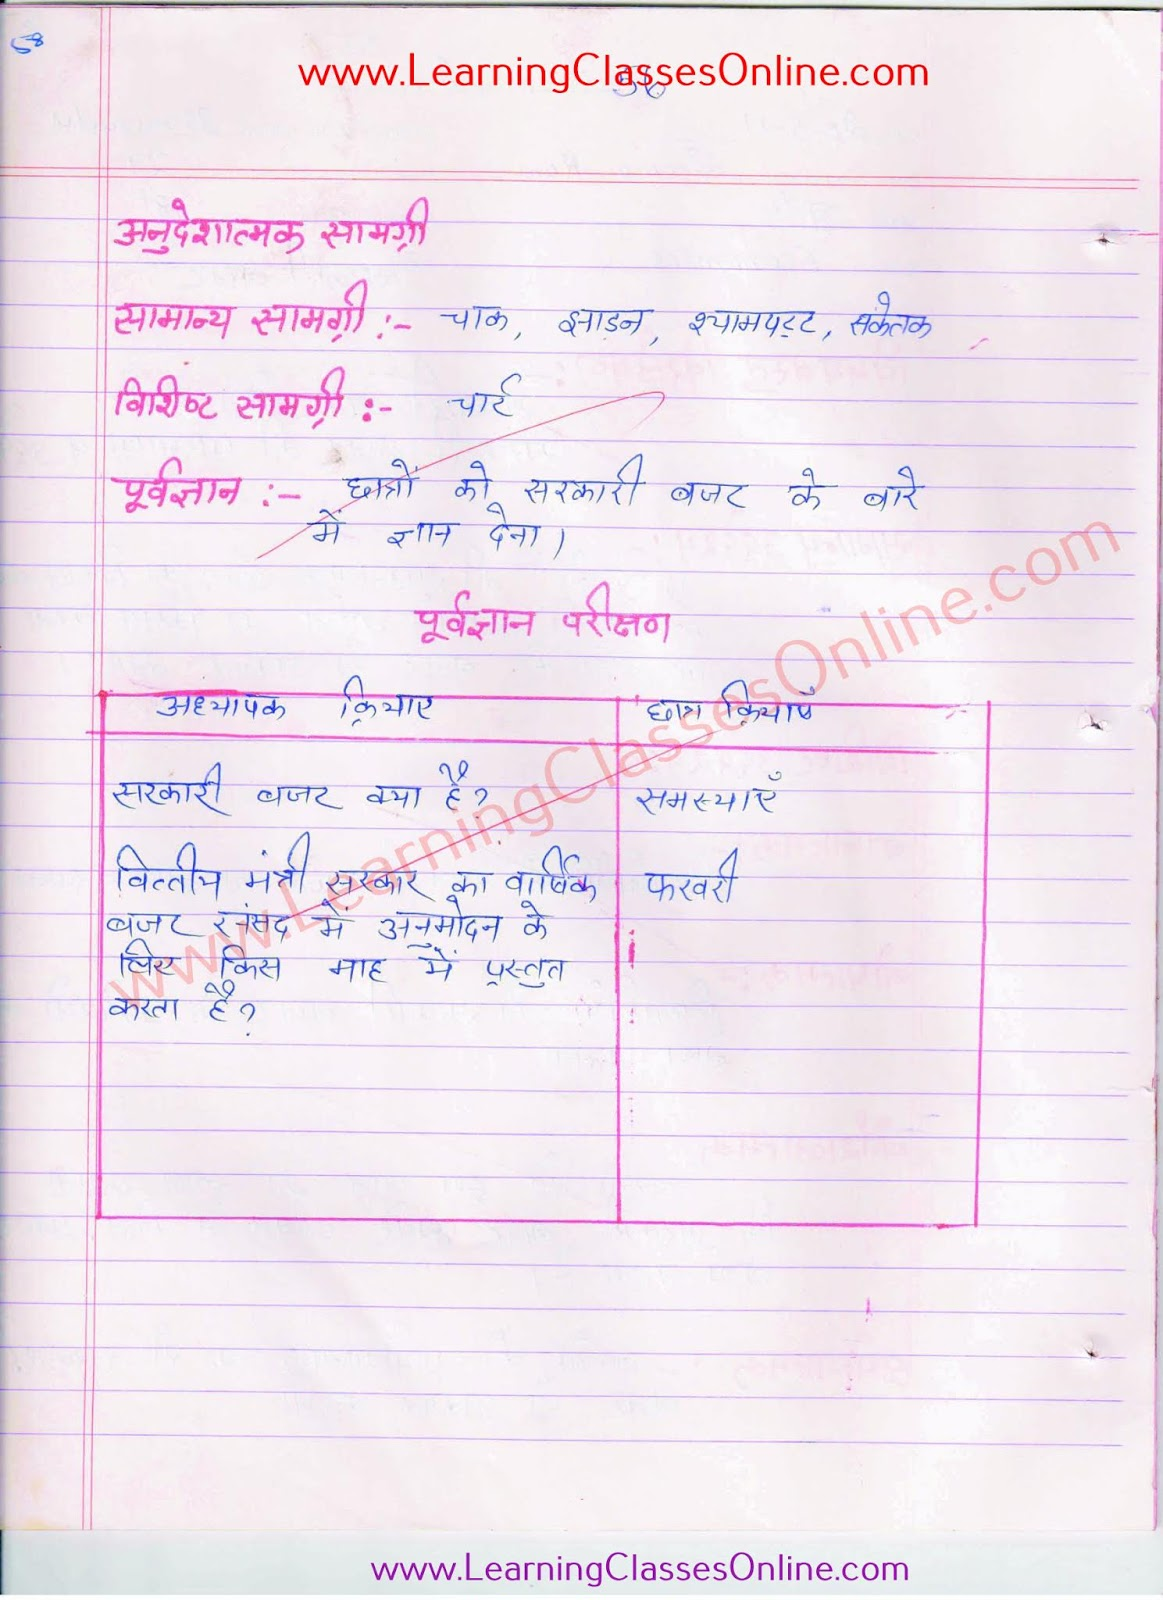 clas 10th budget lesson plan in hindi